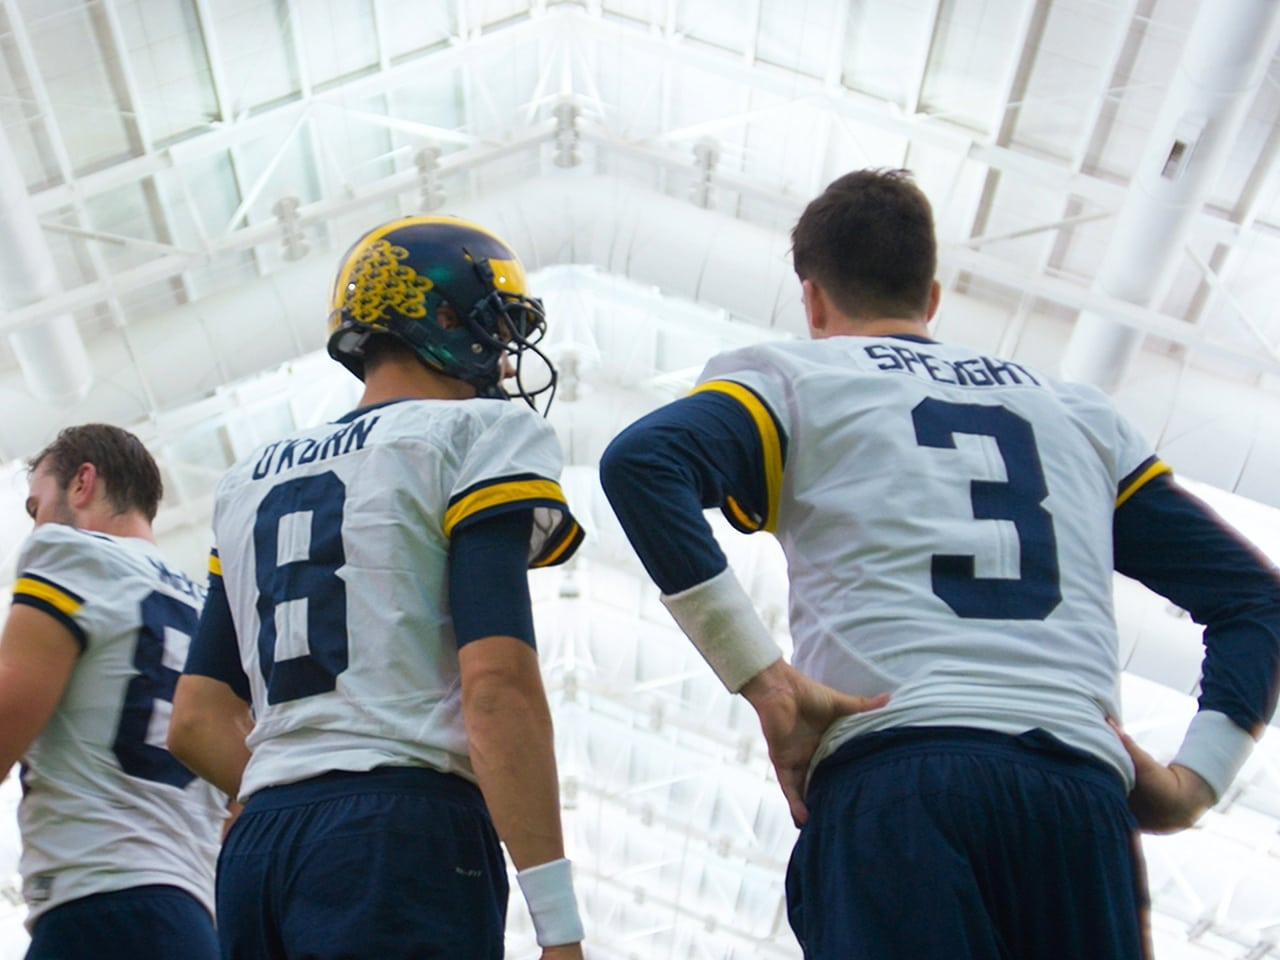 All or Nothing The Michigan Wolverines Episode: FiftyOne Percent